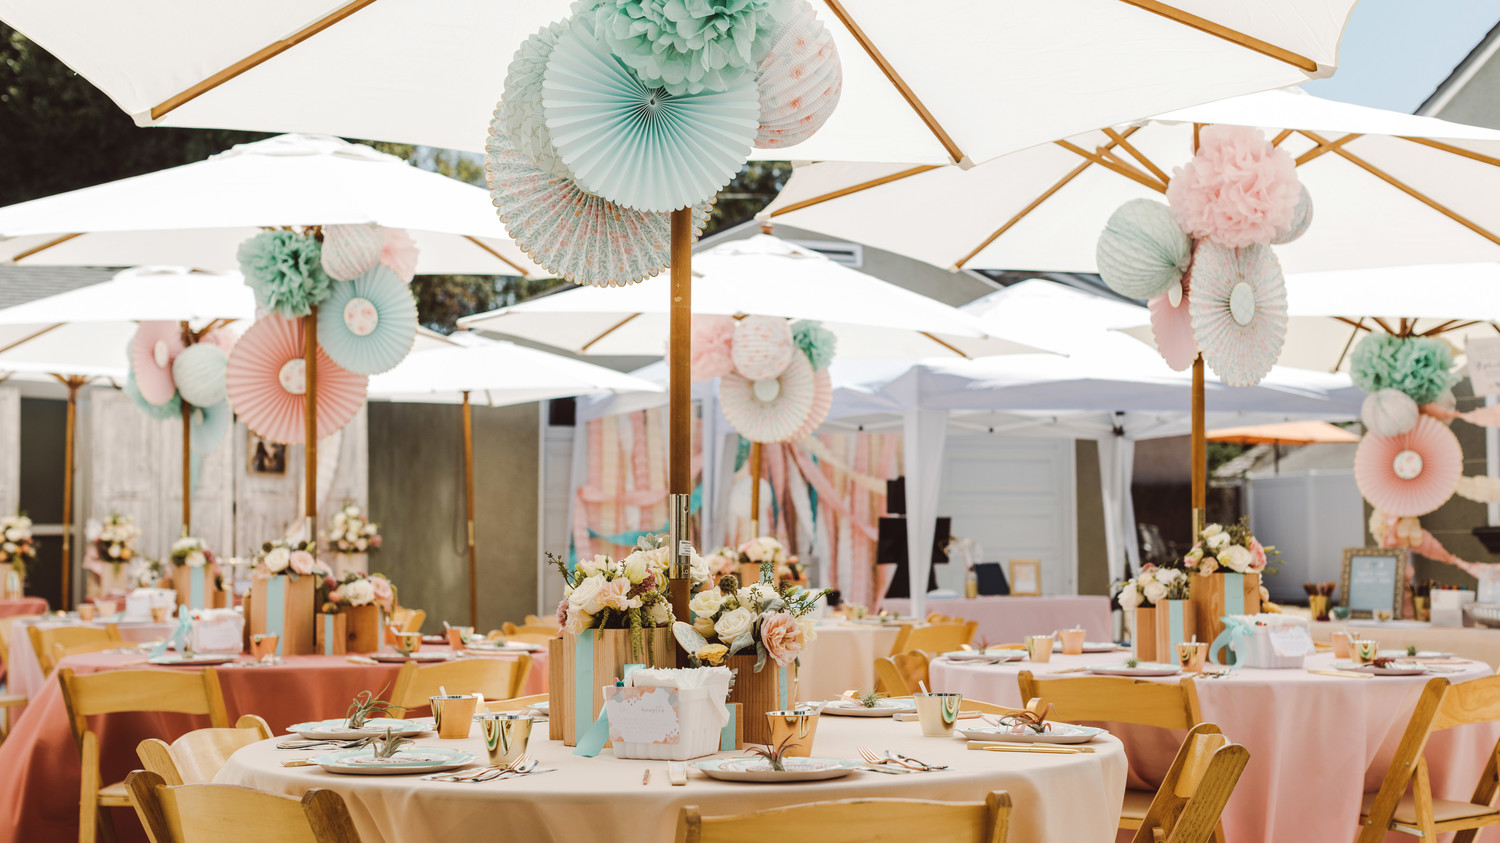 mint blush baby shower decorated space with chairs tables umbrellas